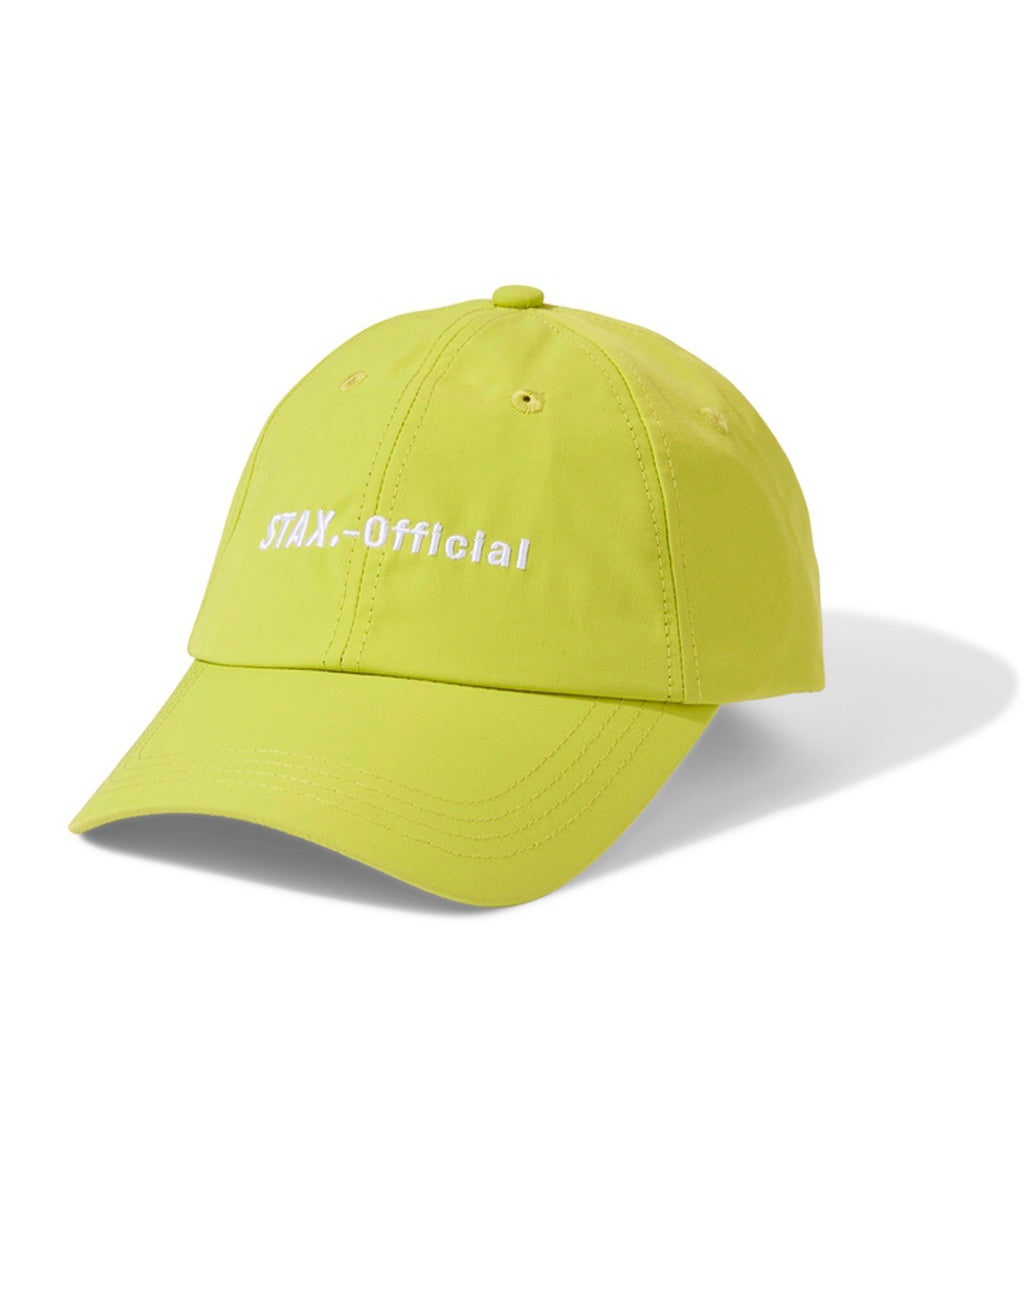 STAX.-Official  DAD HAT - LIGHT GREEN